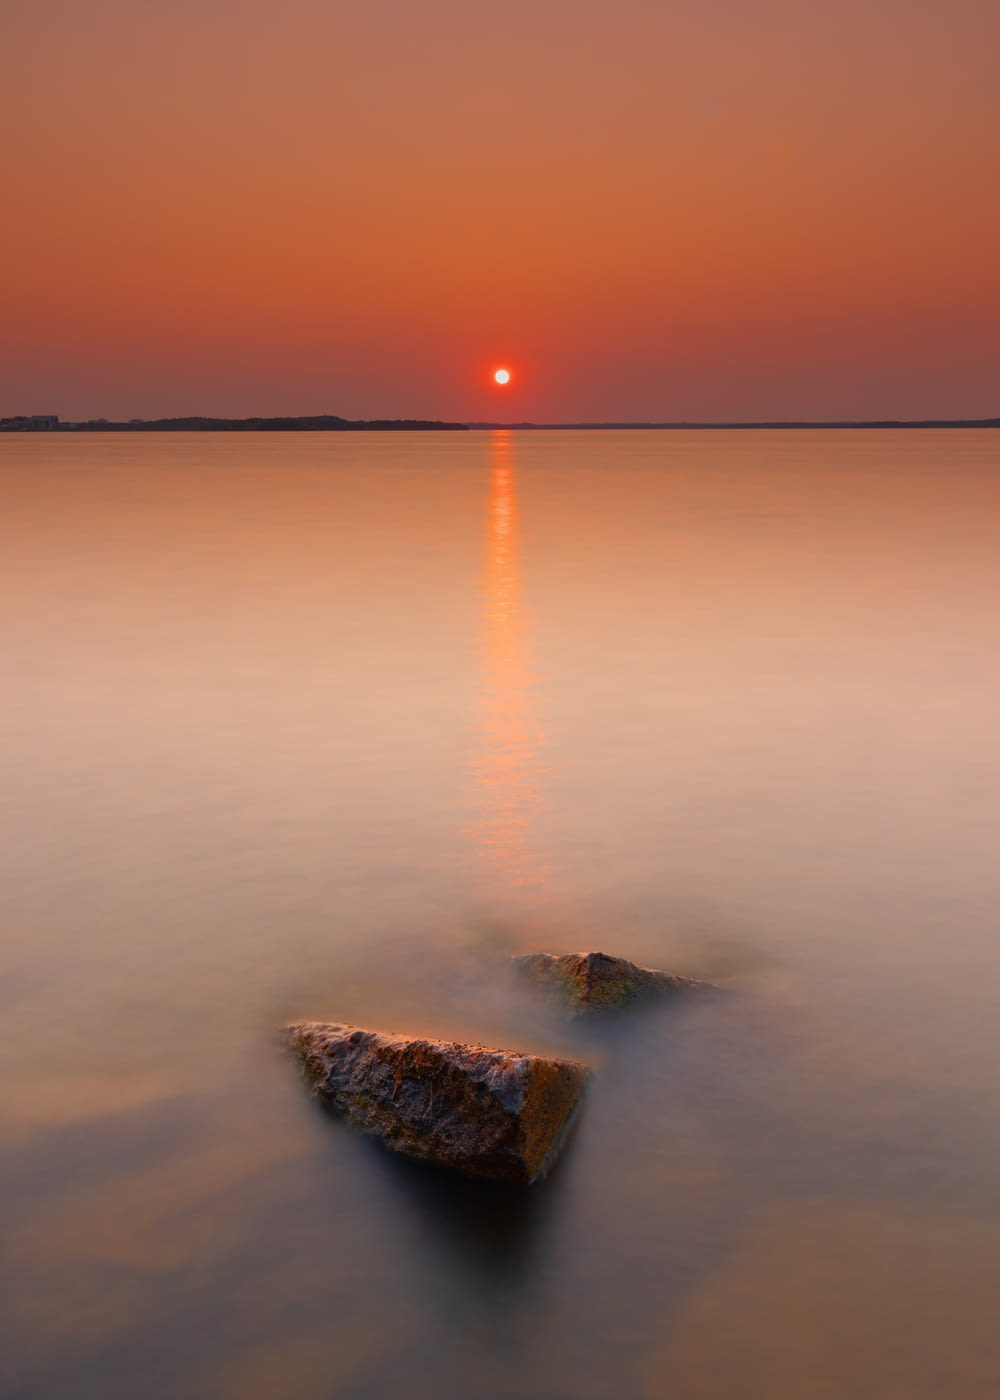 brown rock formation on body of water during sunset